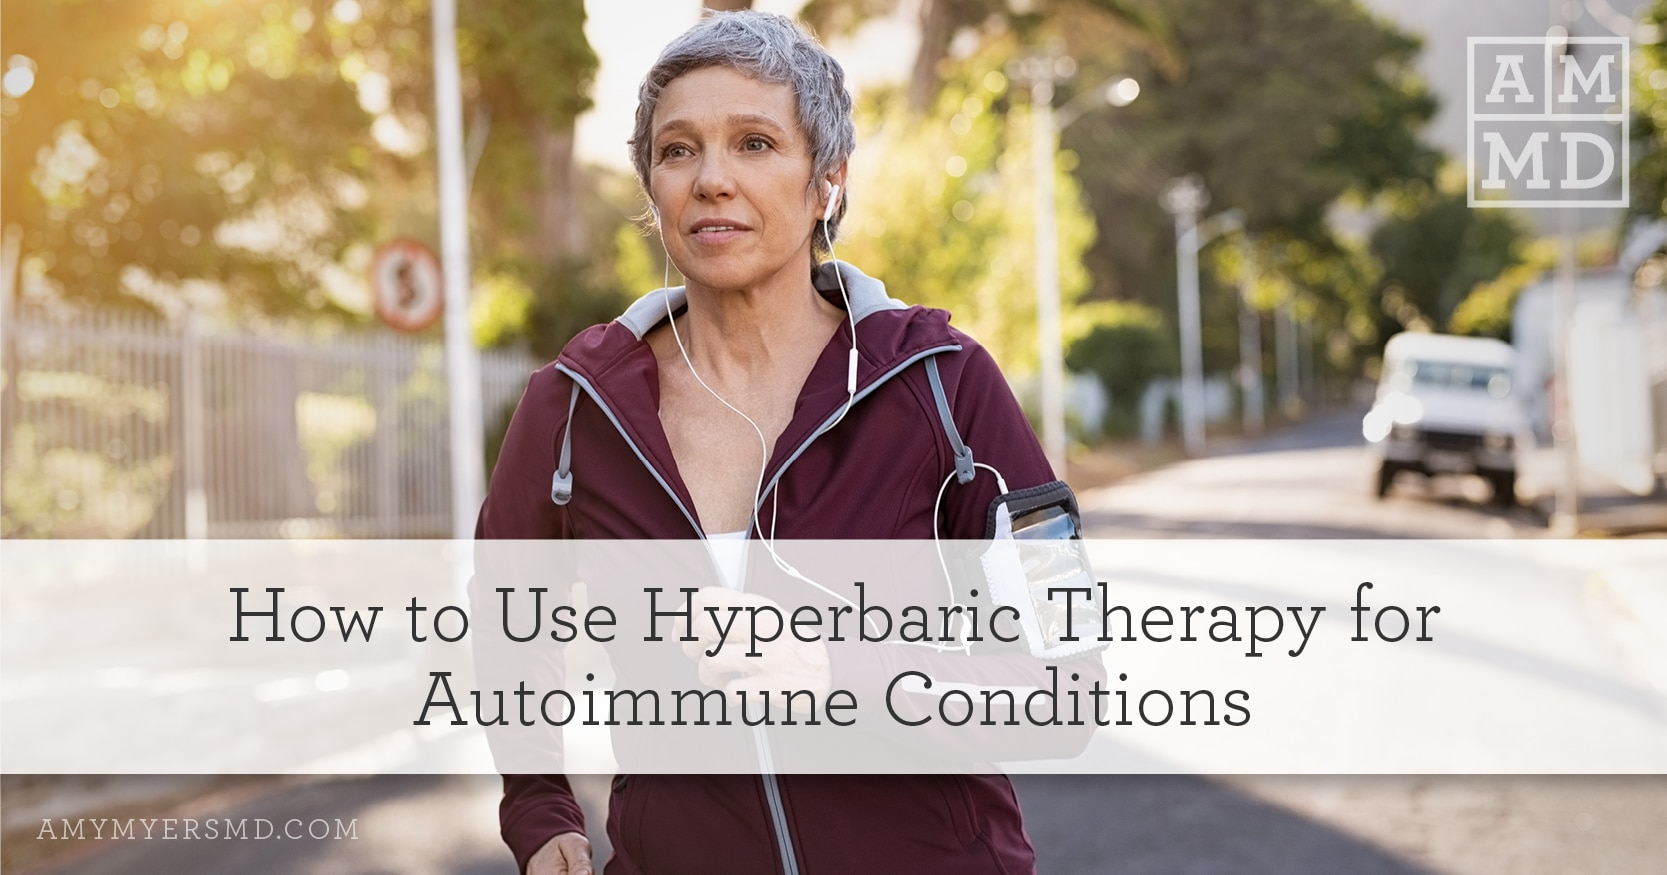 Hyperbaric Therapy for Autoimmune Conditions - A Woman Jogging - Amy Myers MD